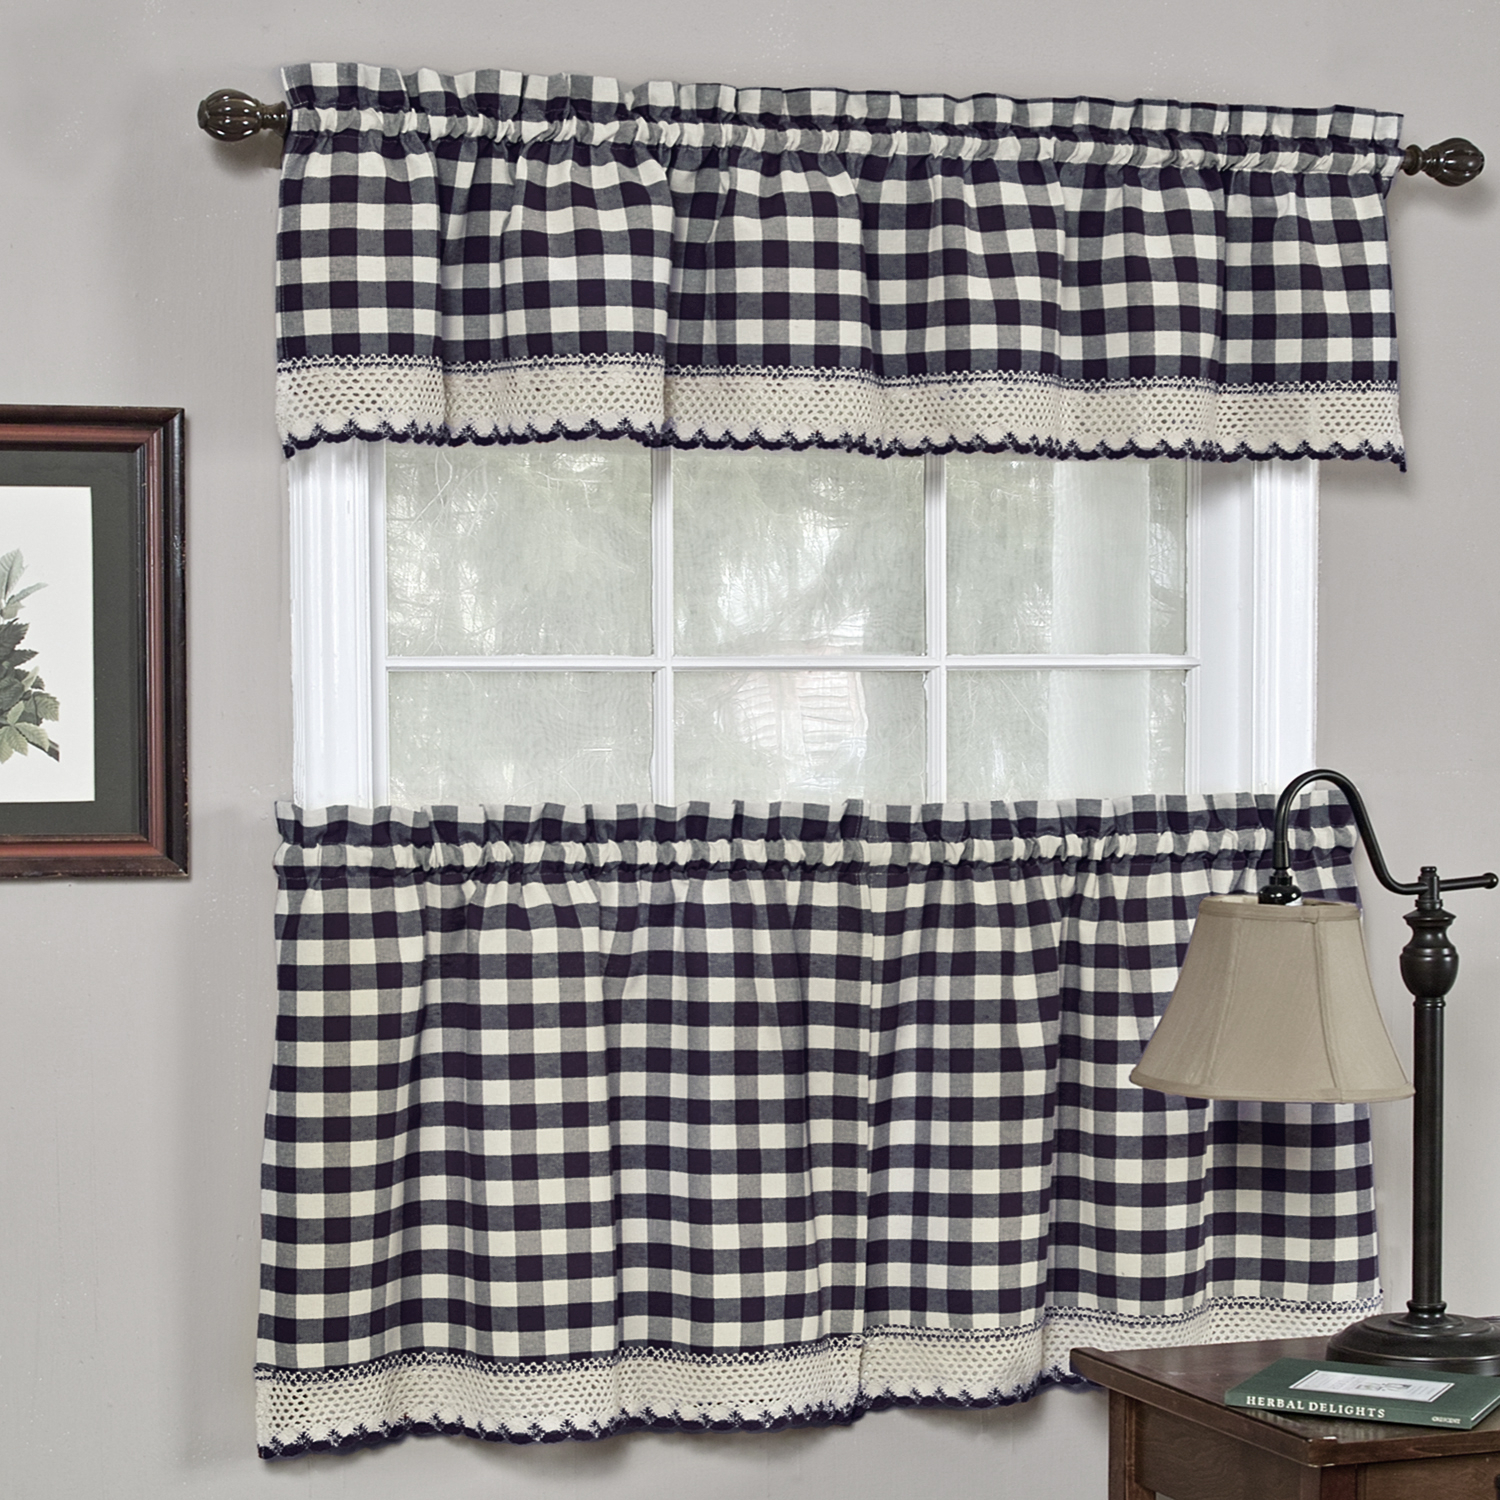 Details About Buffalo Check Gingham Kitchen Curtains Tiers Or Valance – Navy Within Classic Navy Cotton Blend Buffalo Check Kitchen Curtain Sets (View 2 of 20)